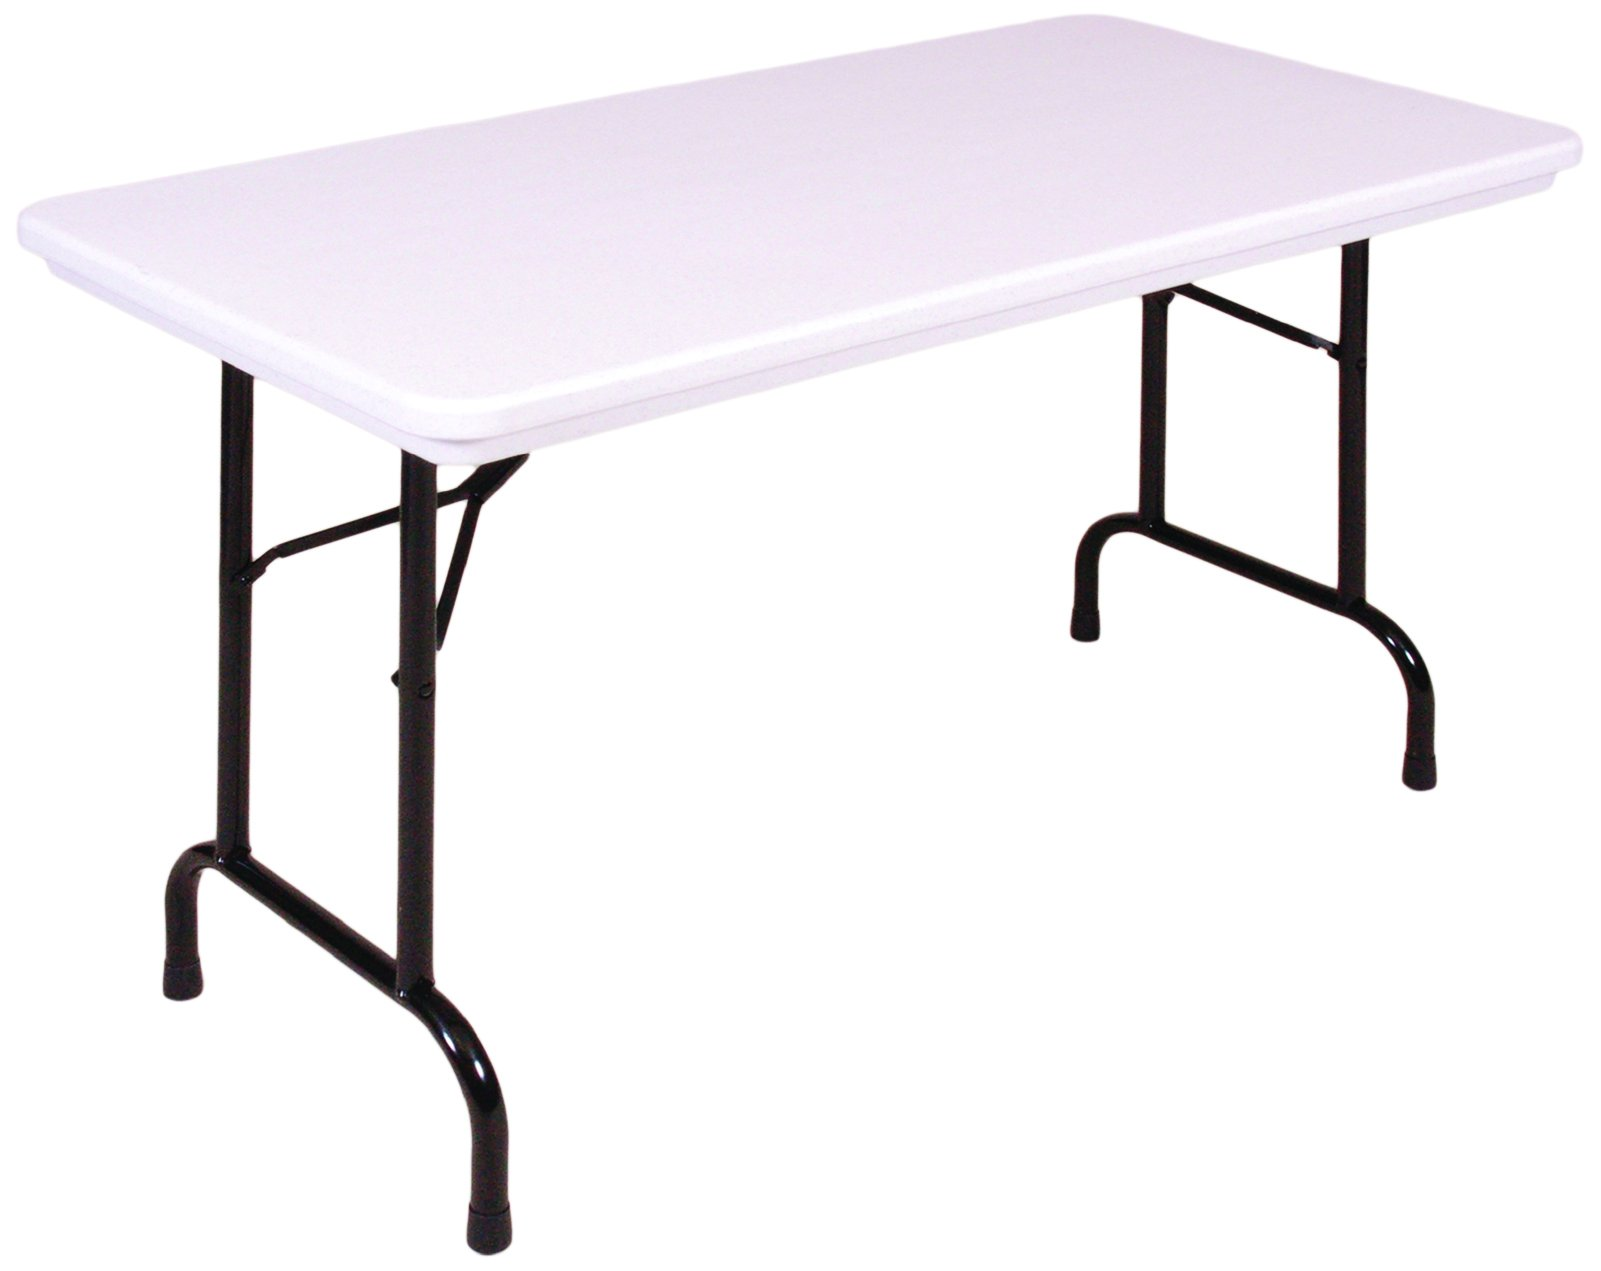 Correll R1872-23 R Series, Blow Molded Plastic Commercial Duty Folding Table, Rectangular, 18'' x 72'', Gray Granite, Custom Built to Order in the USA